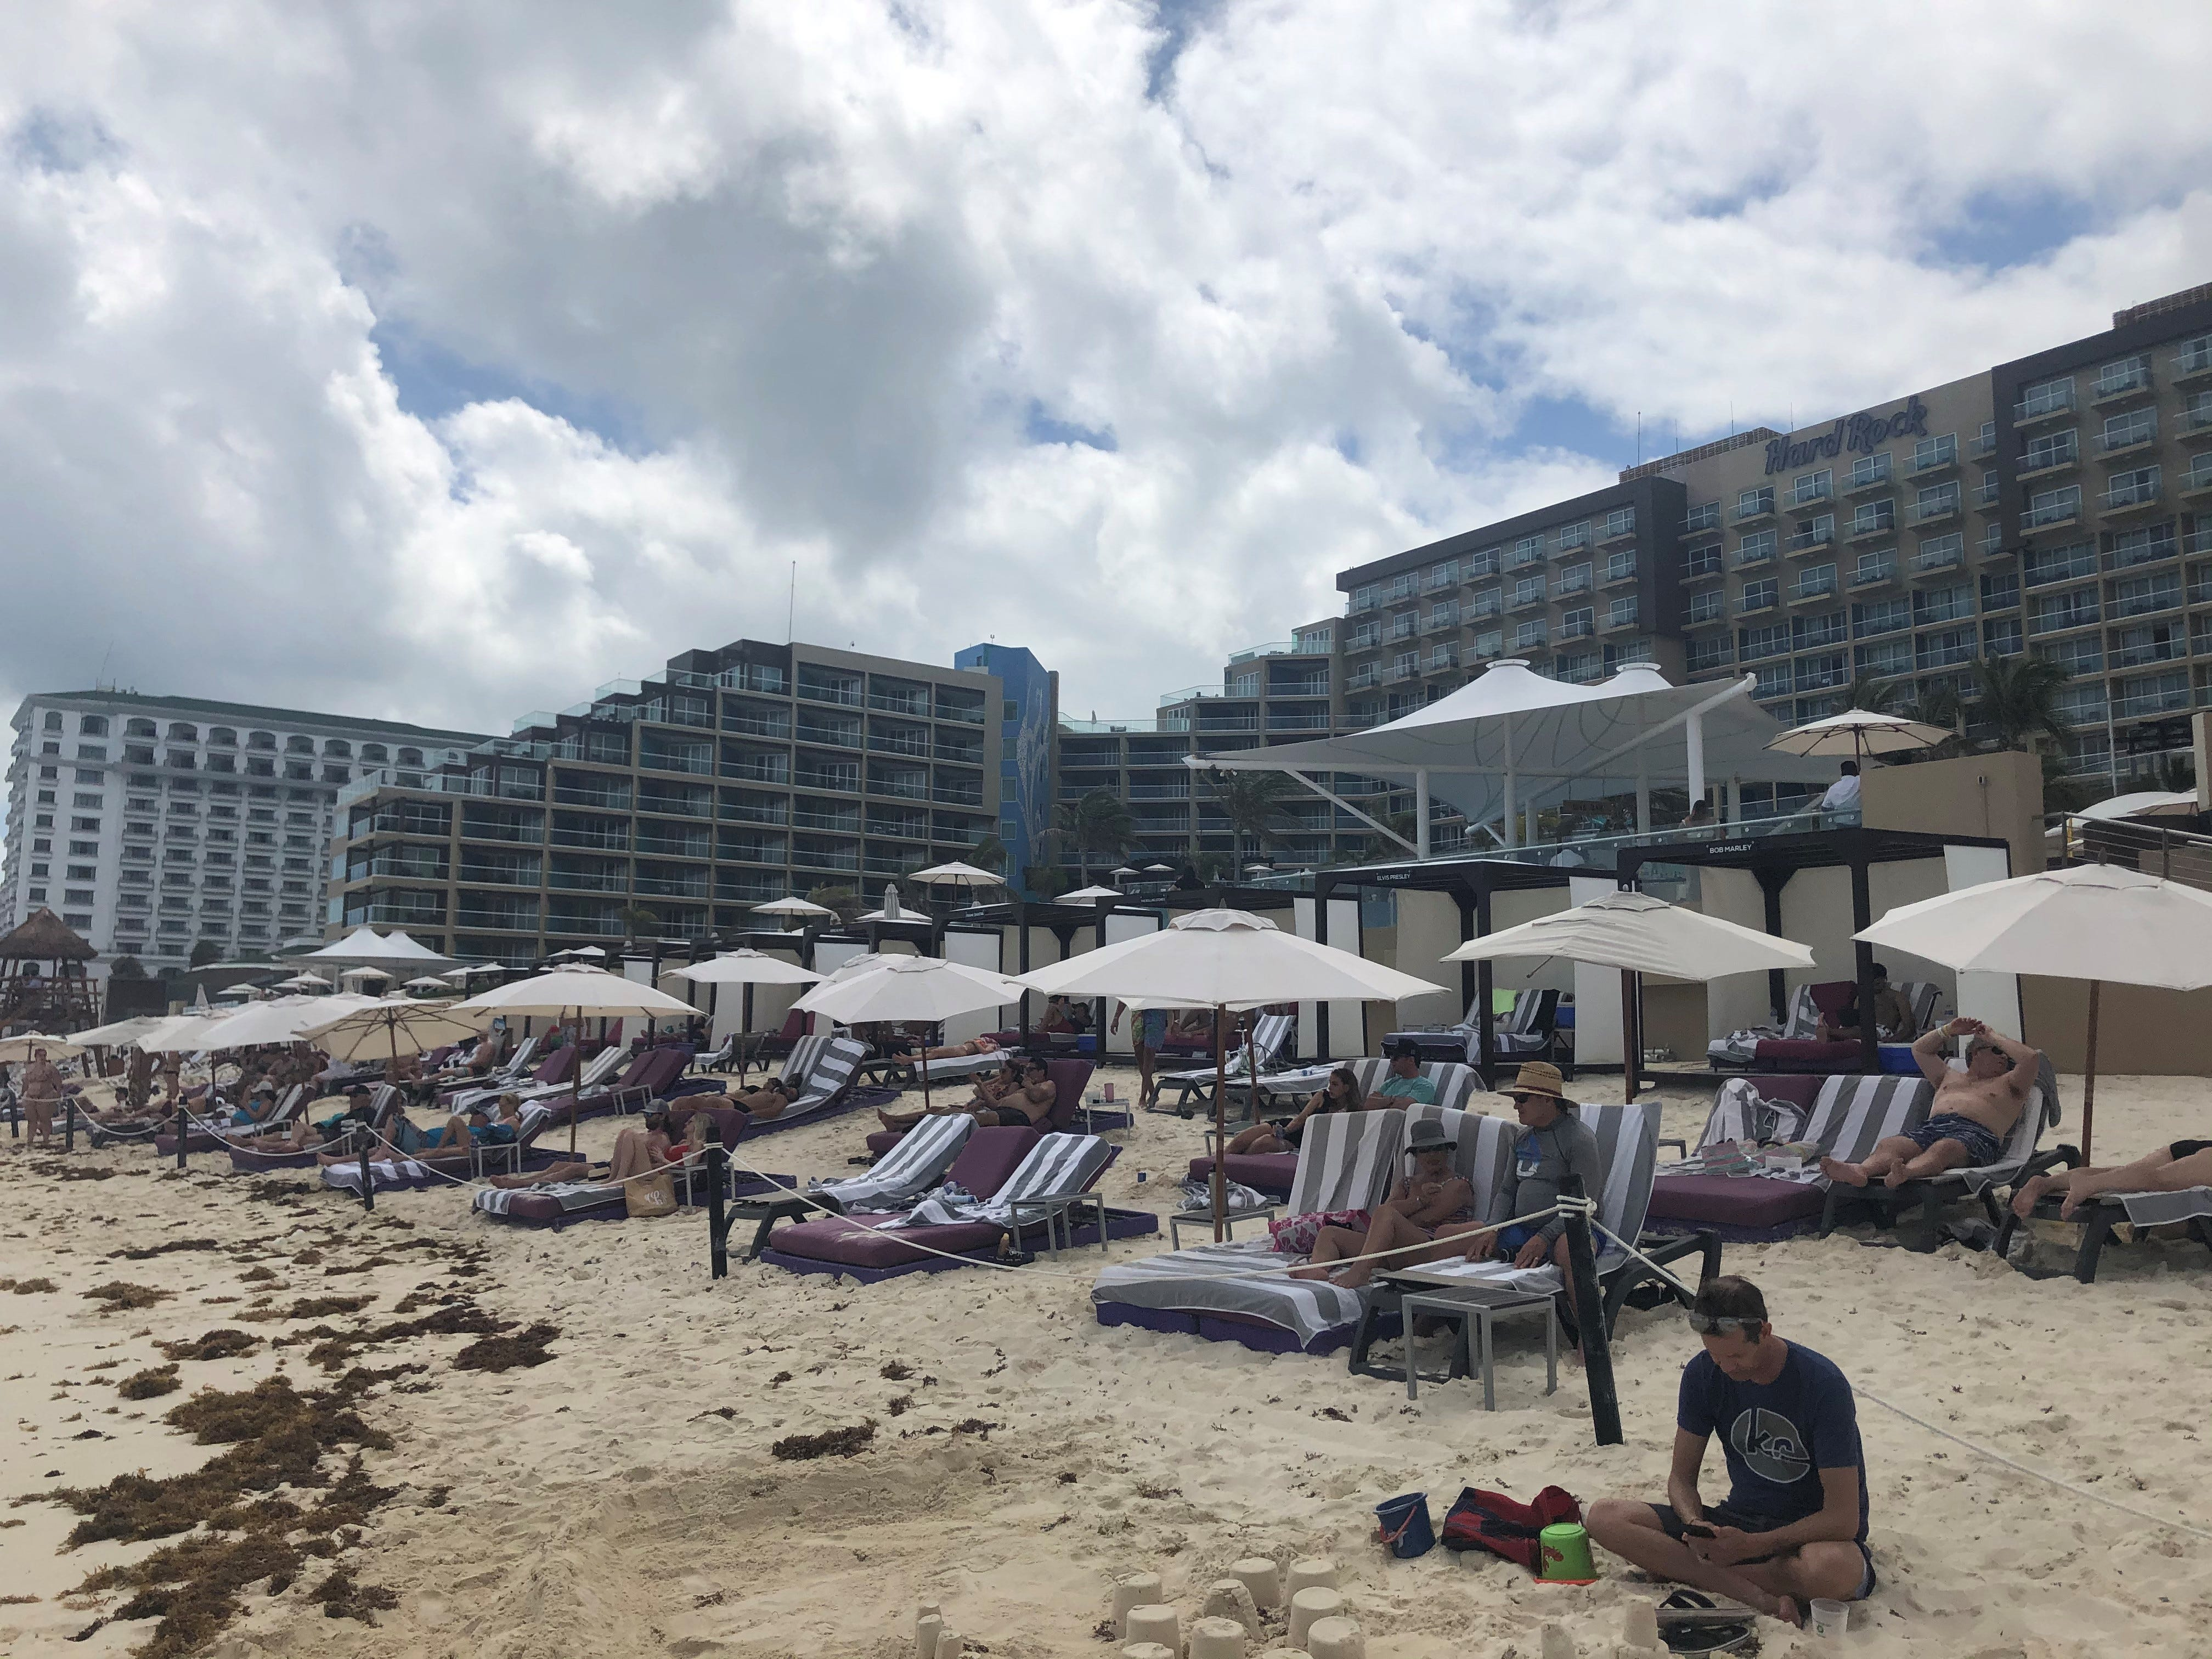 The beach in front of the Hard Rock Hotel Cancun was filled with sunbathers during spring break.